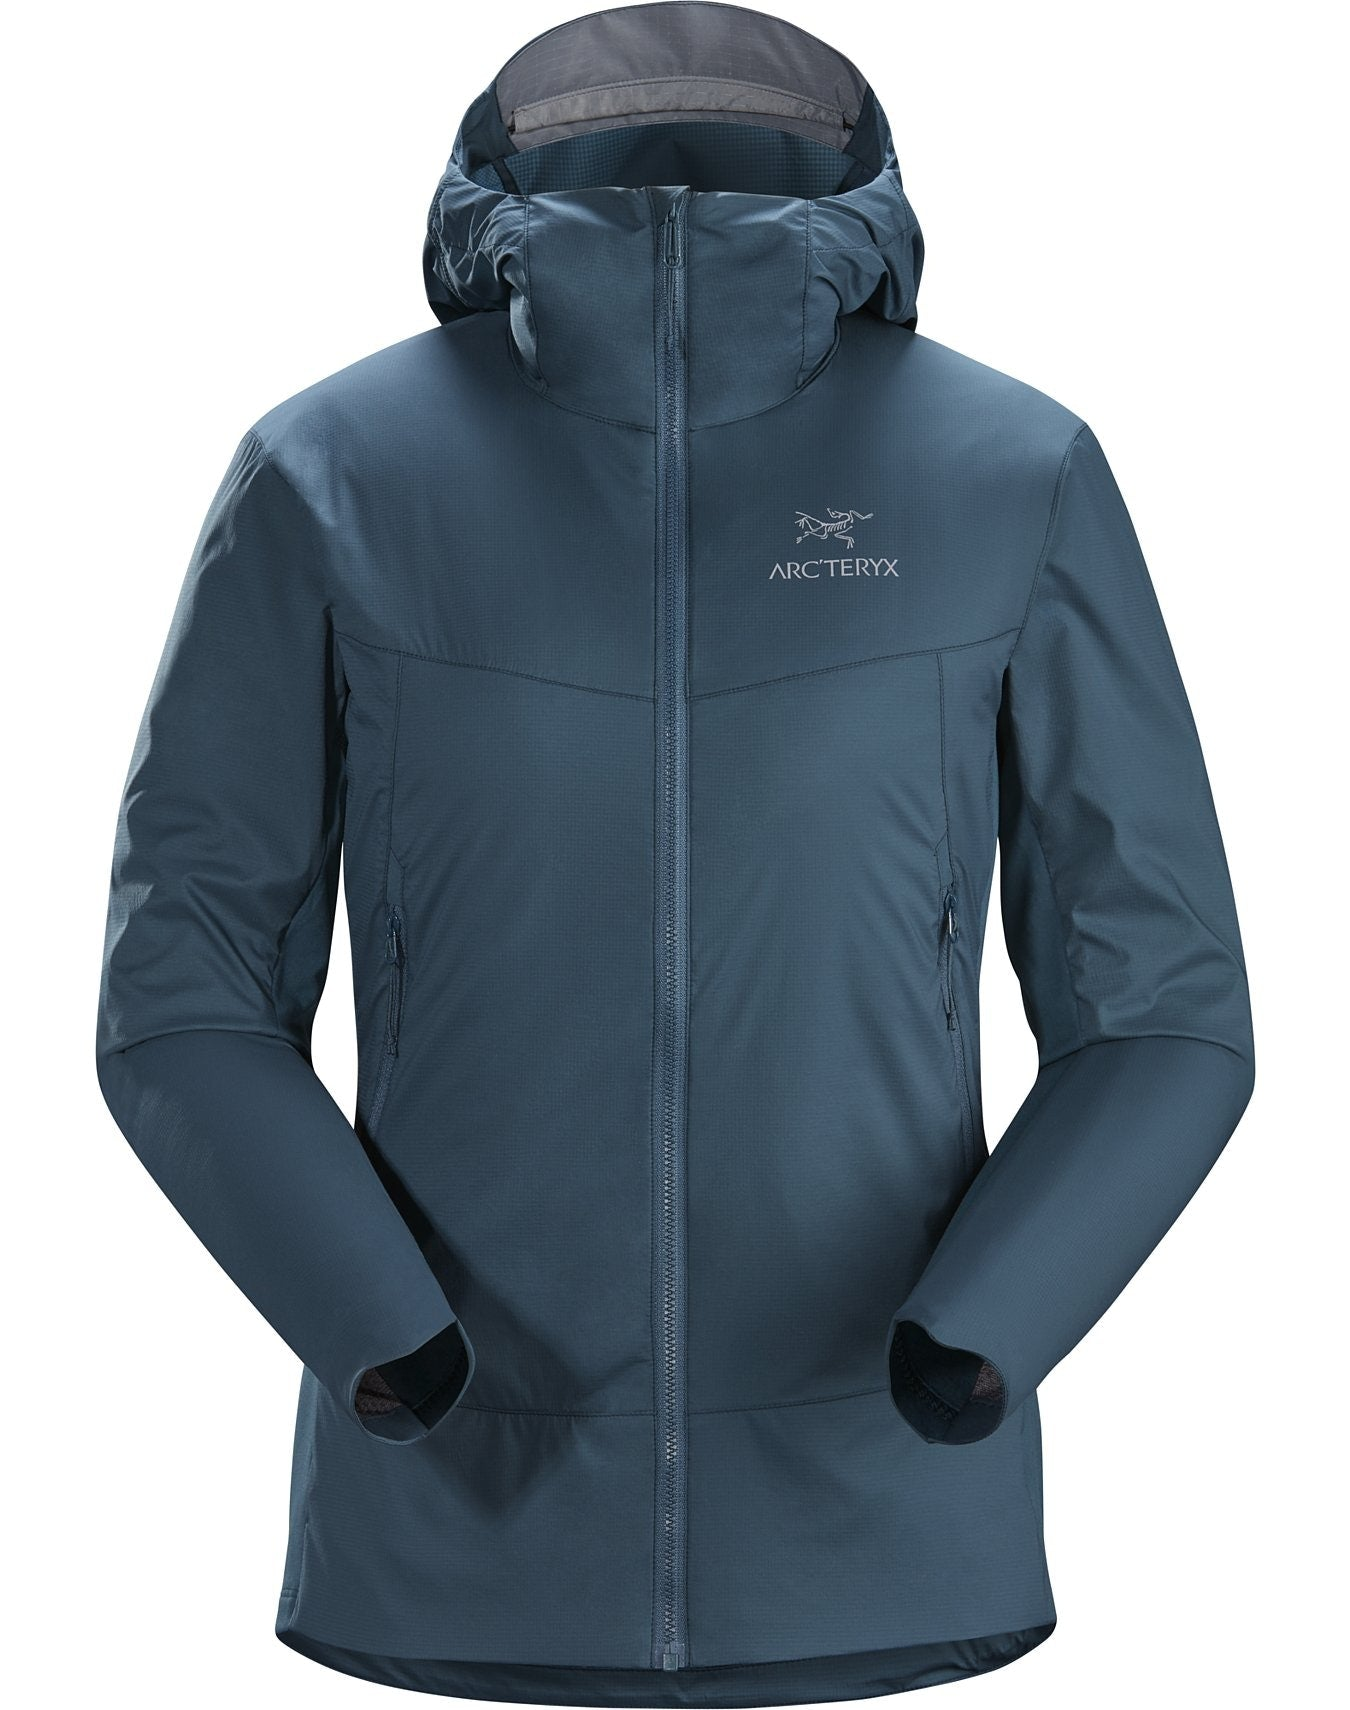 ARC'TERYX W'S WINDBREAKERS ASTRAL XS ATOM SL HOODY